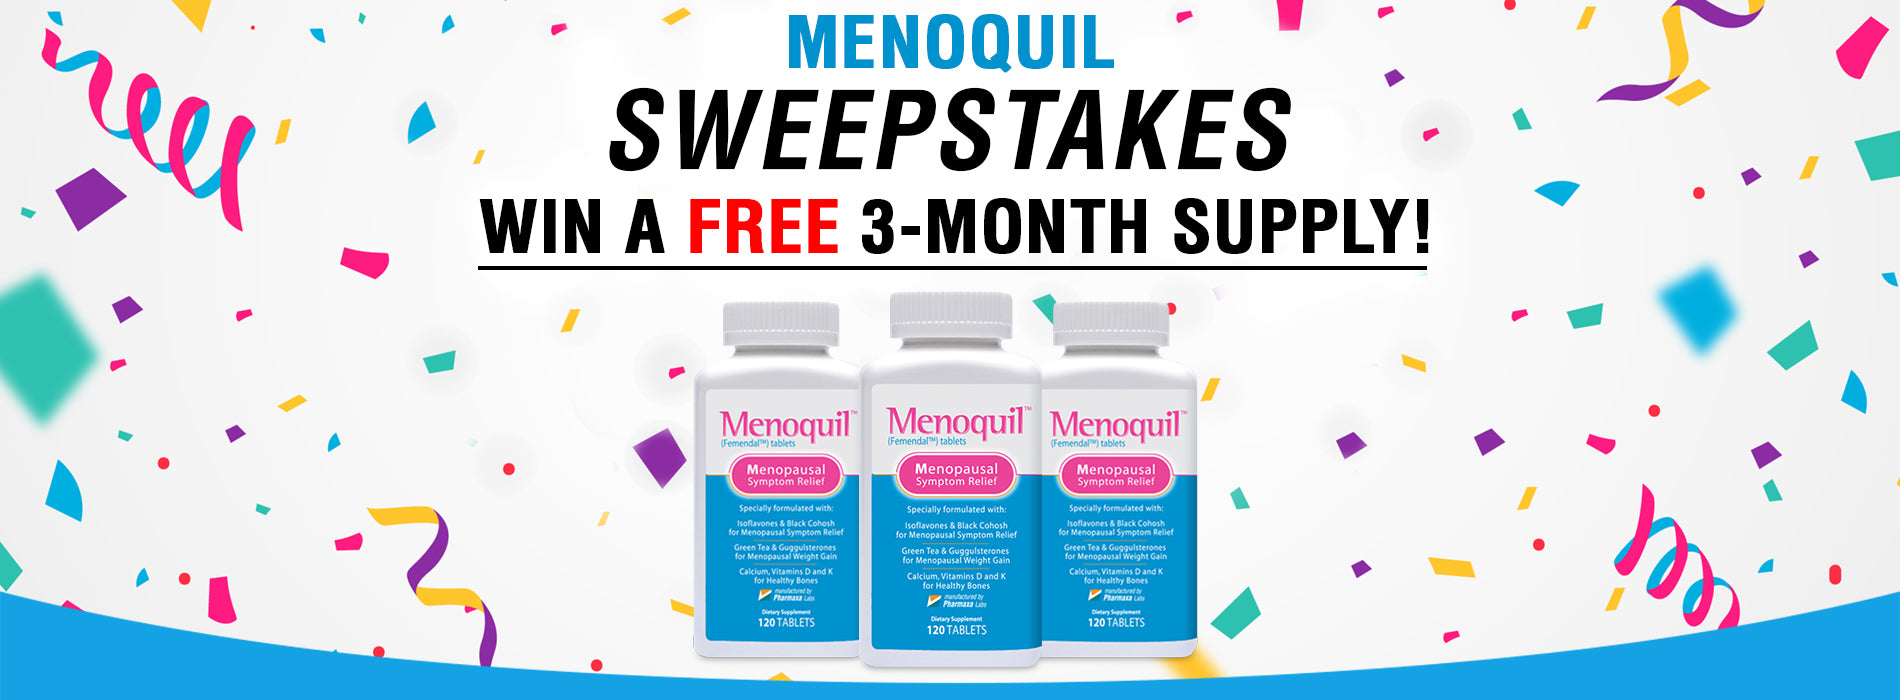 Menoquil Banner